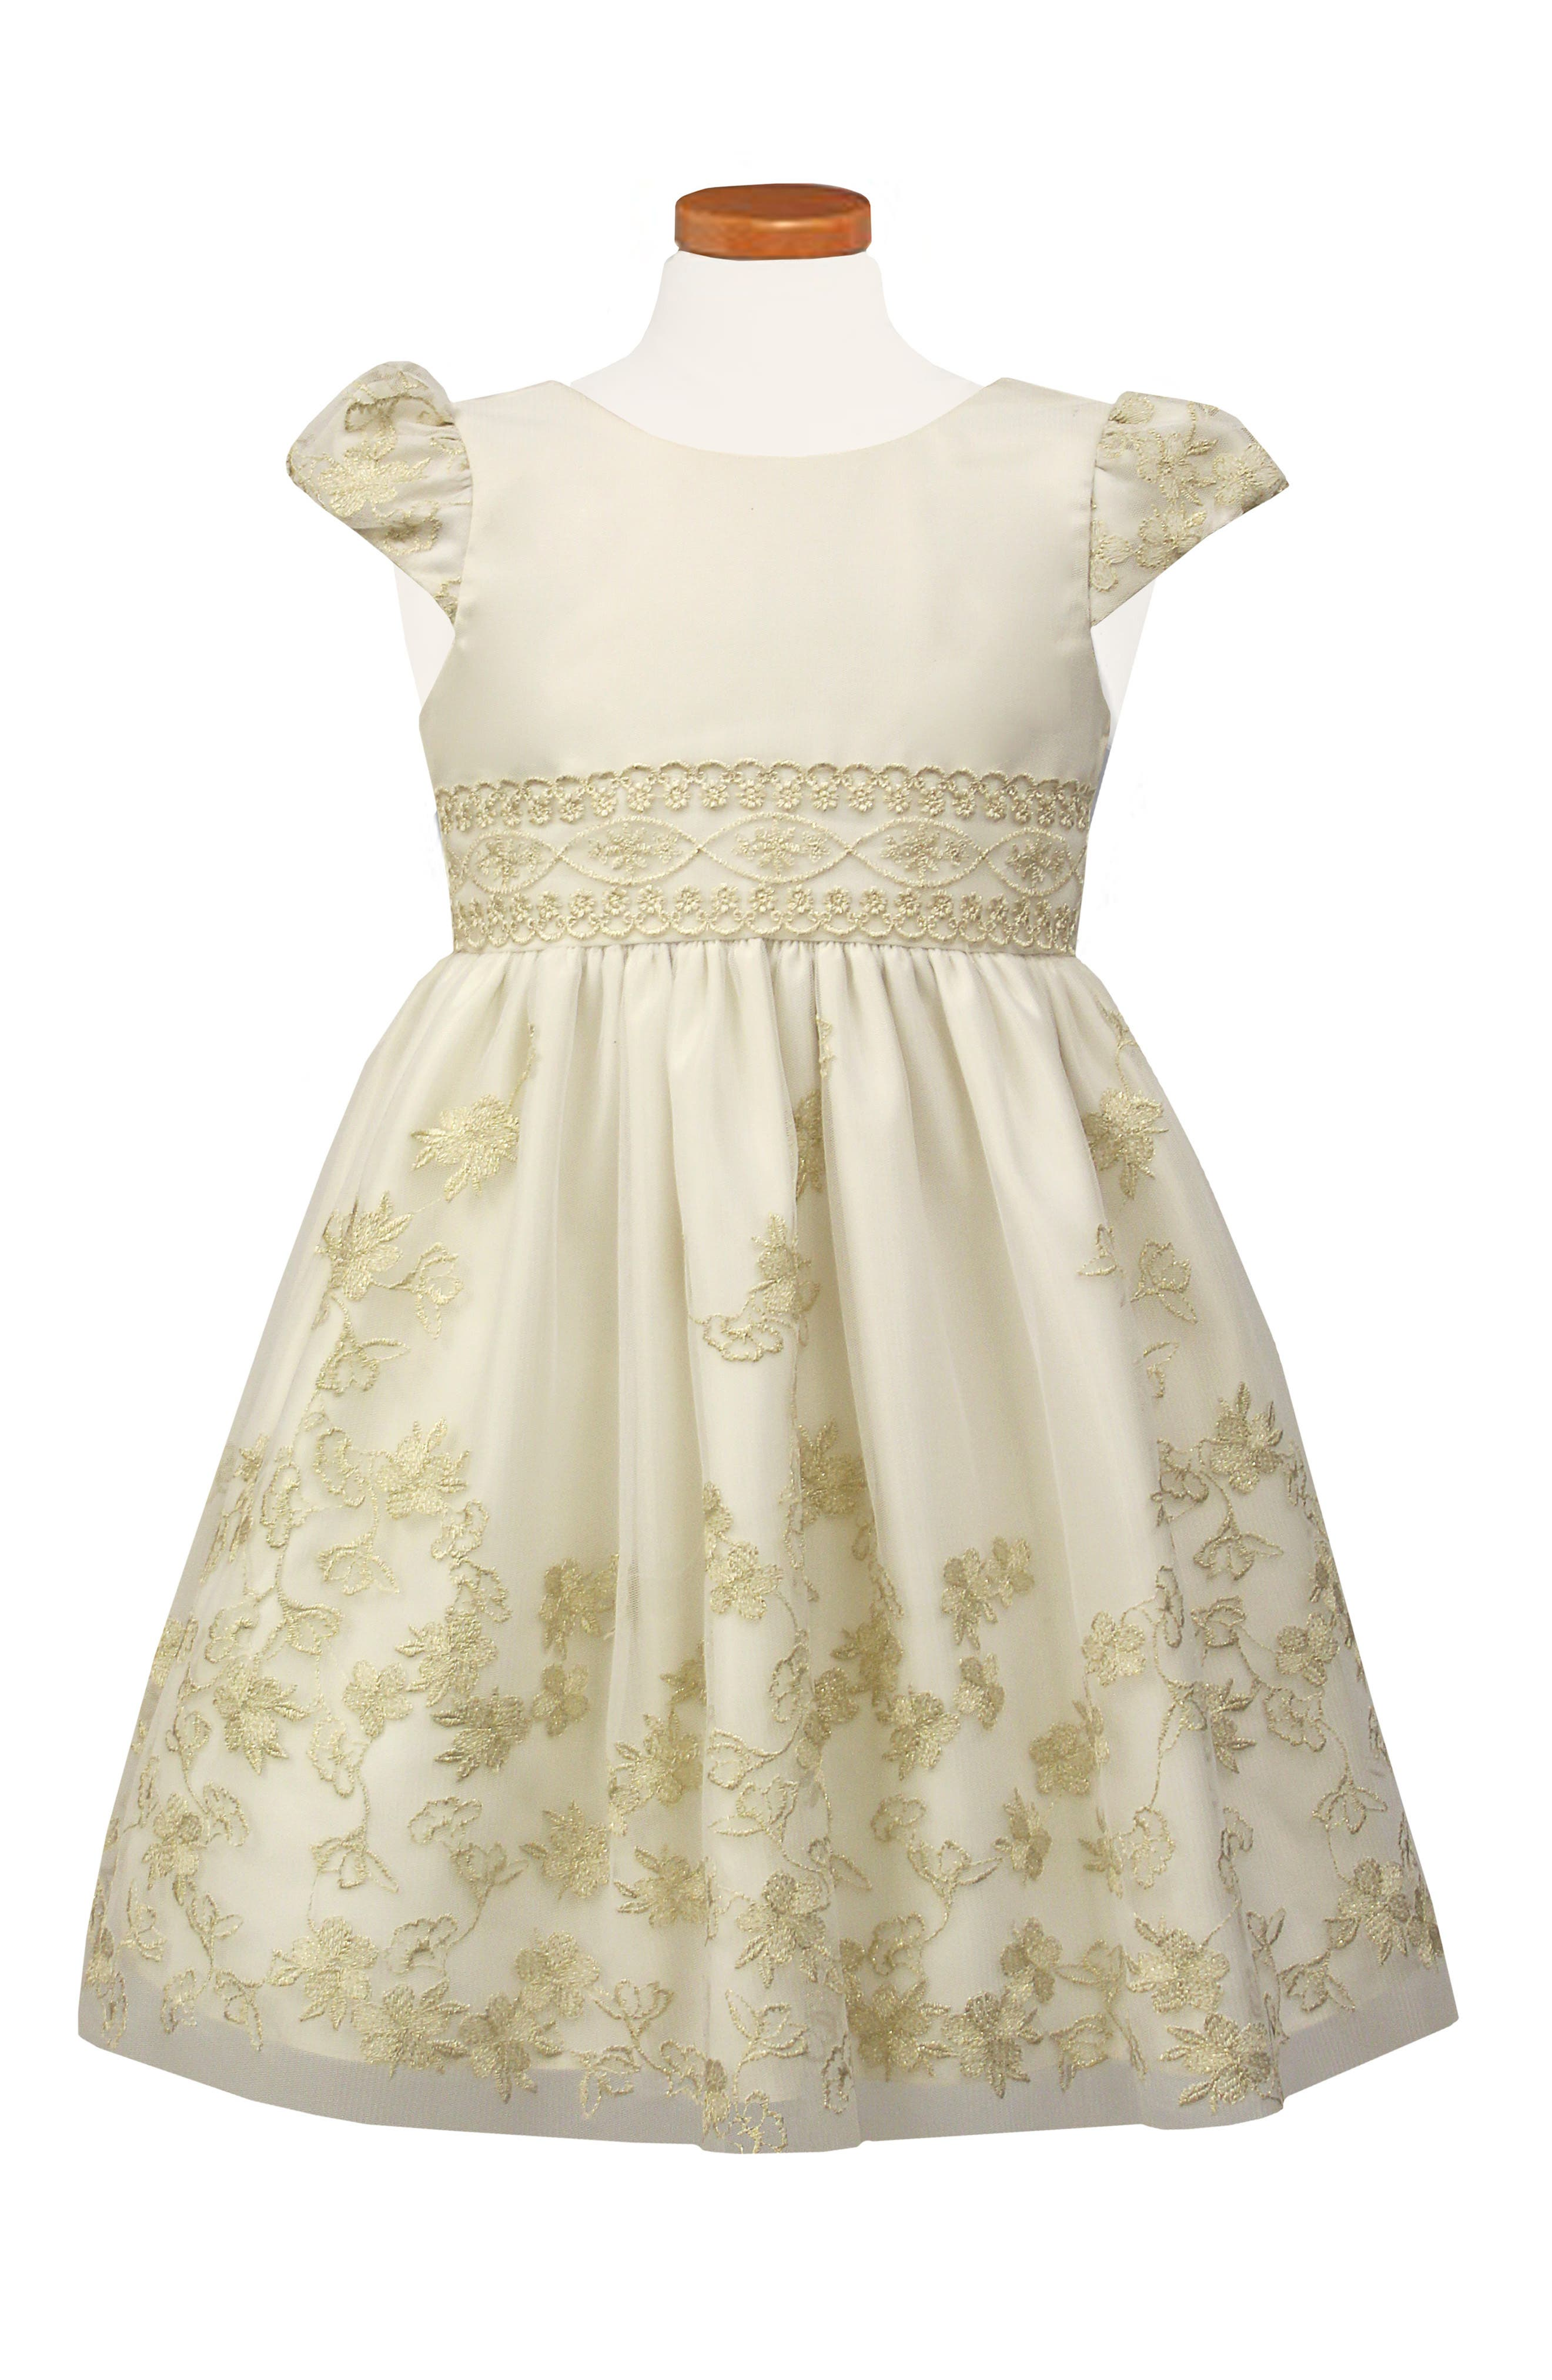 SORBET,                             Embroidered Fit & Flare Dress,                             Main thumbnail 1, color,                             IVORY